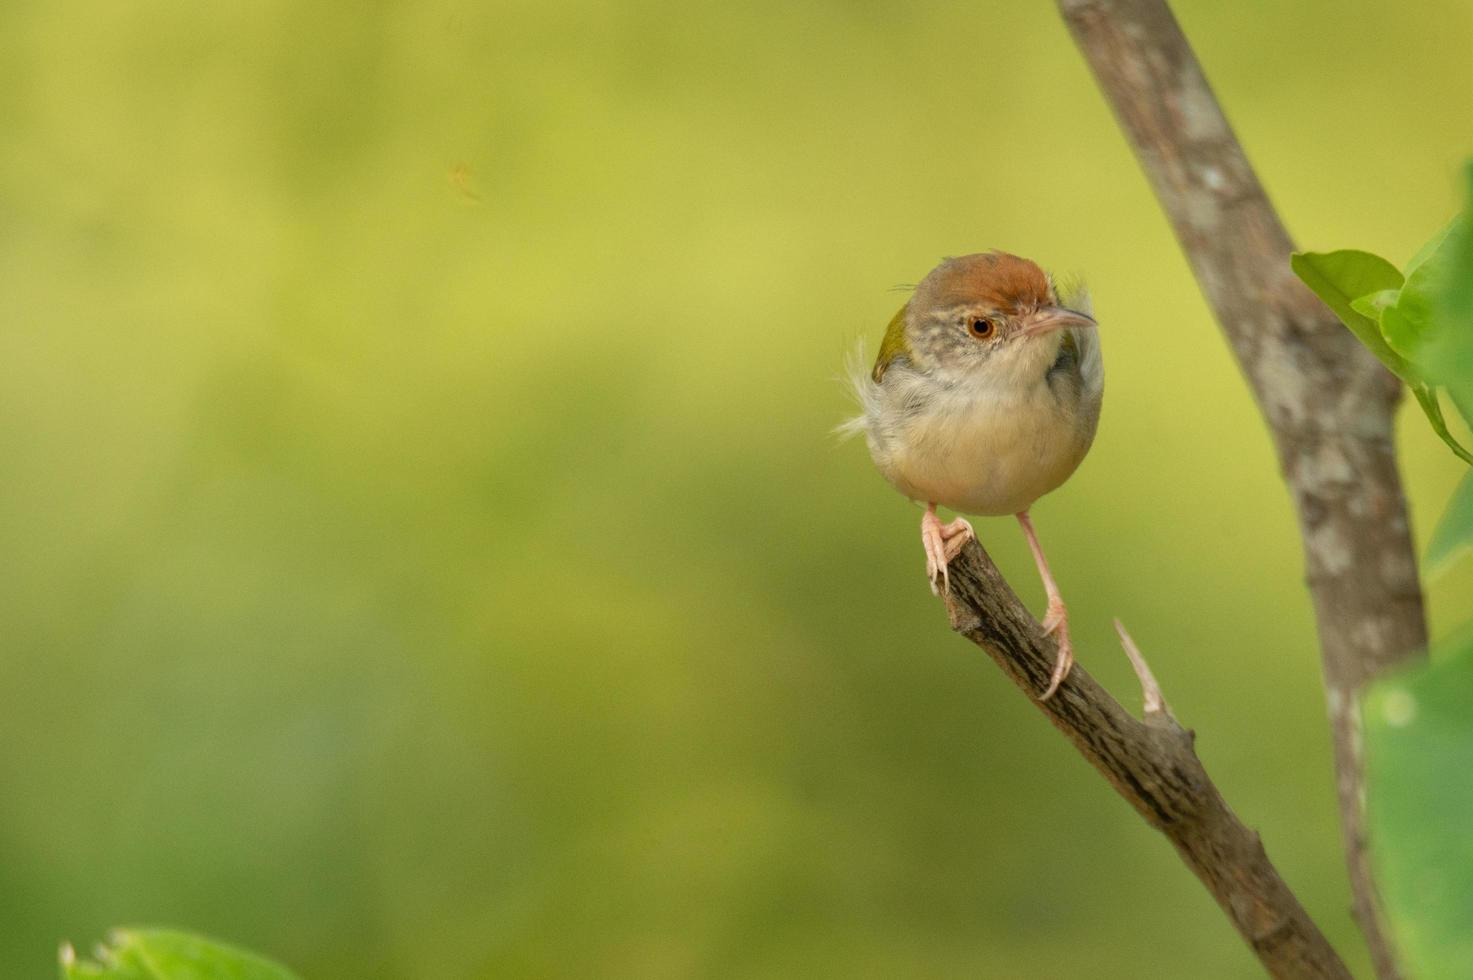 Small bird perched on branch photo